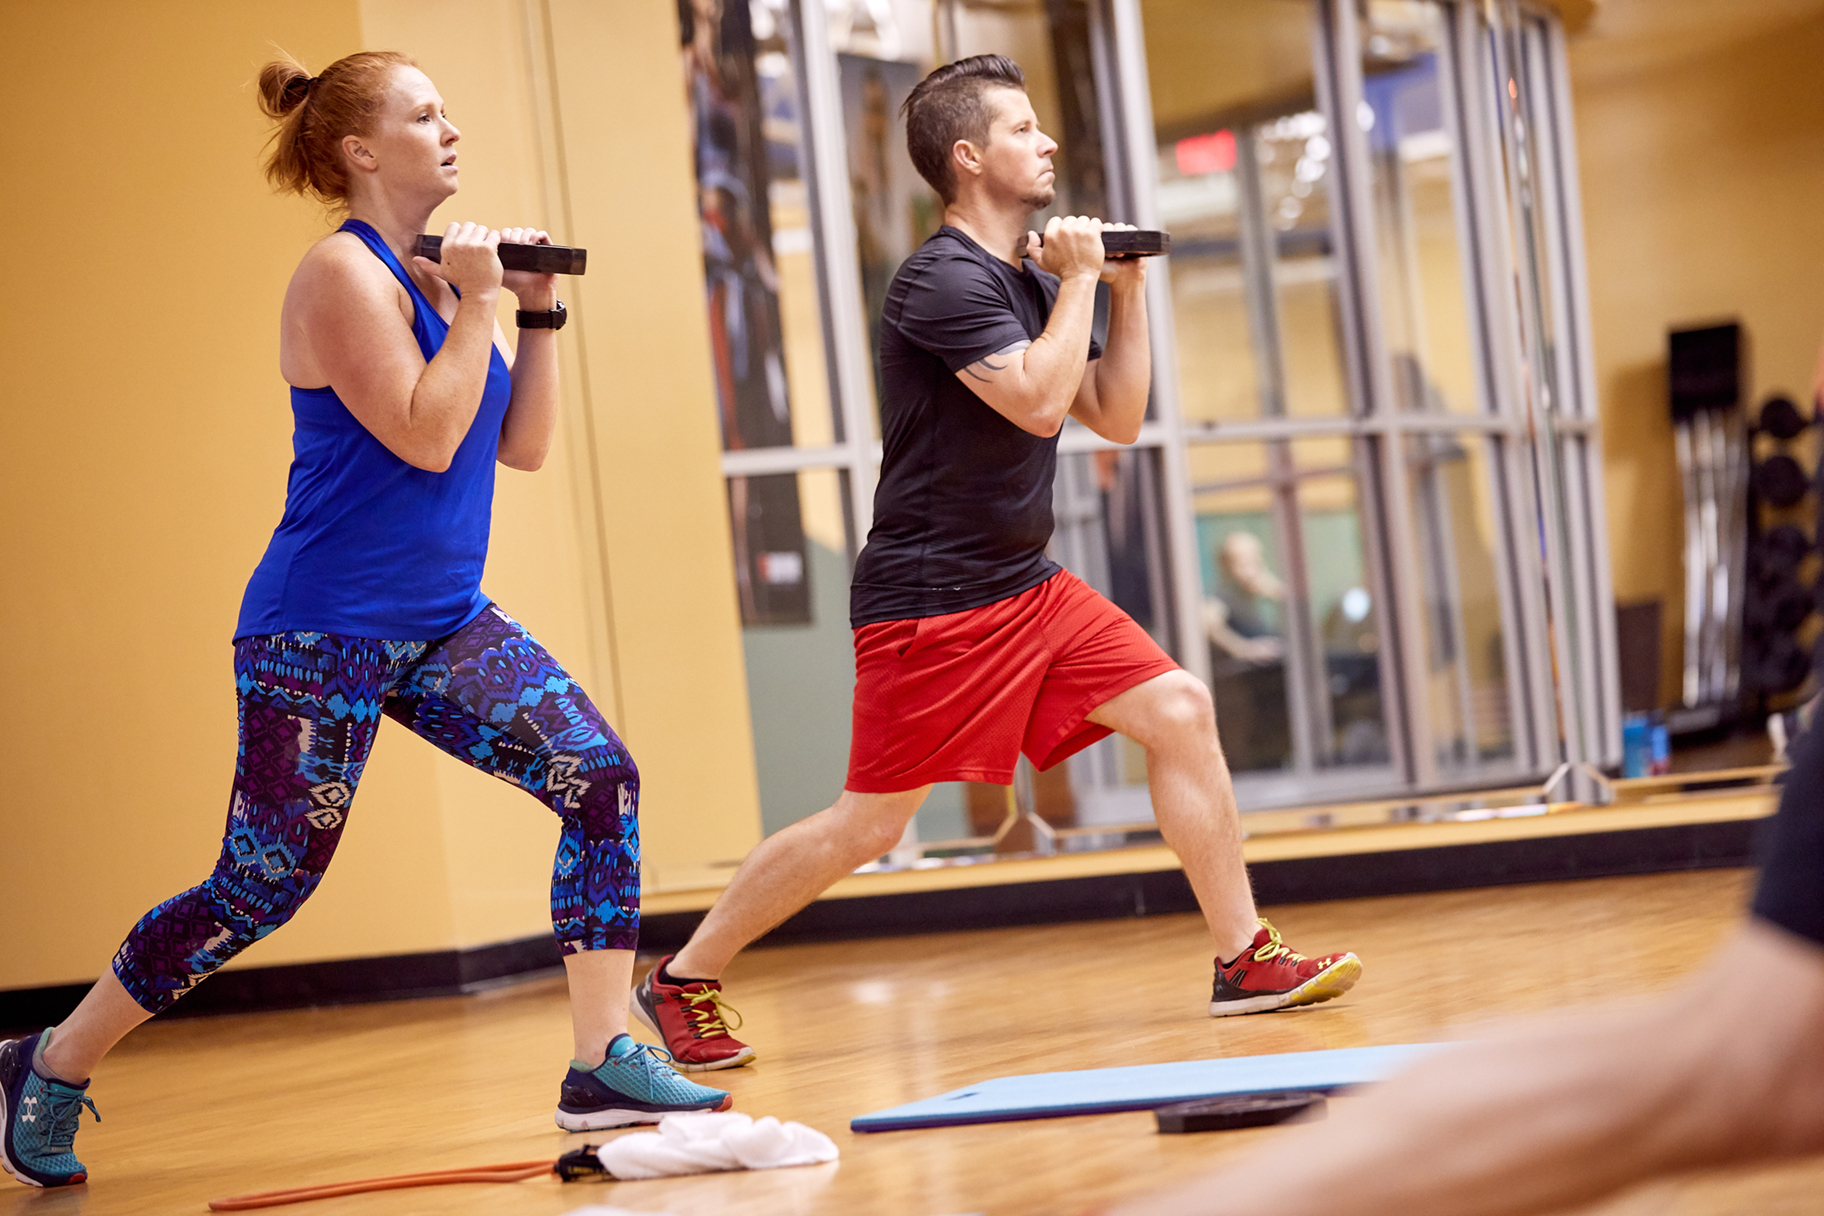 Cardio Combo - High energy athletic workout using interval training to maximize cardio output while also building strength and endurance. See Schedule →